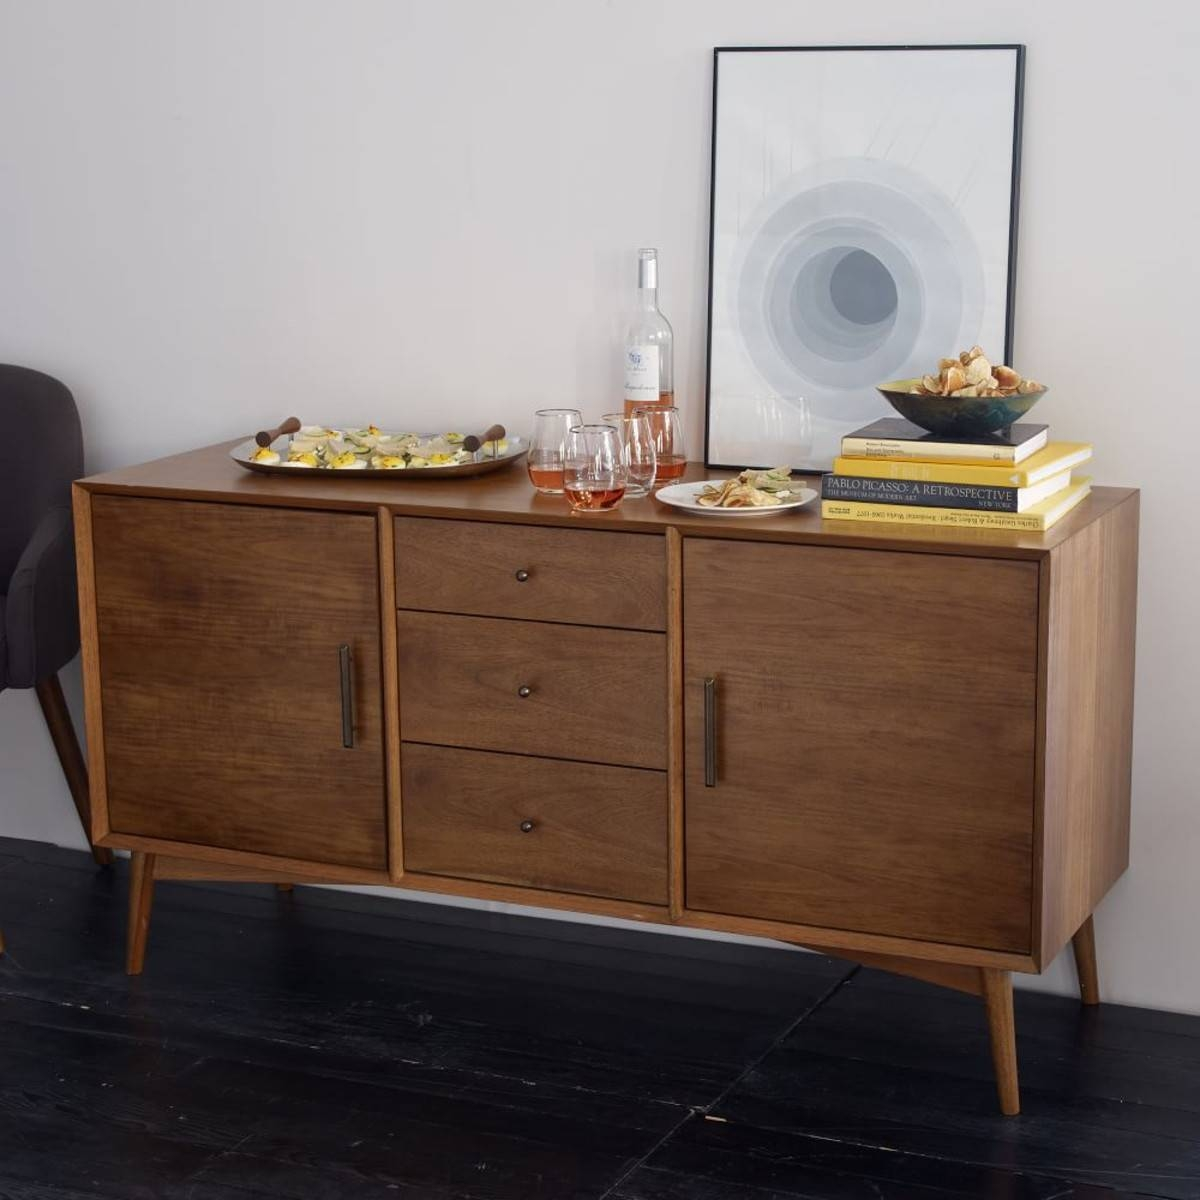 West Elm Mid Century Buffet : Can You Find Time With An Antique regarding West Elm Sideboards (Image 13 of 15)